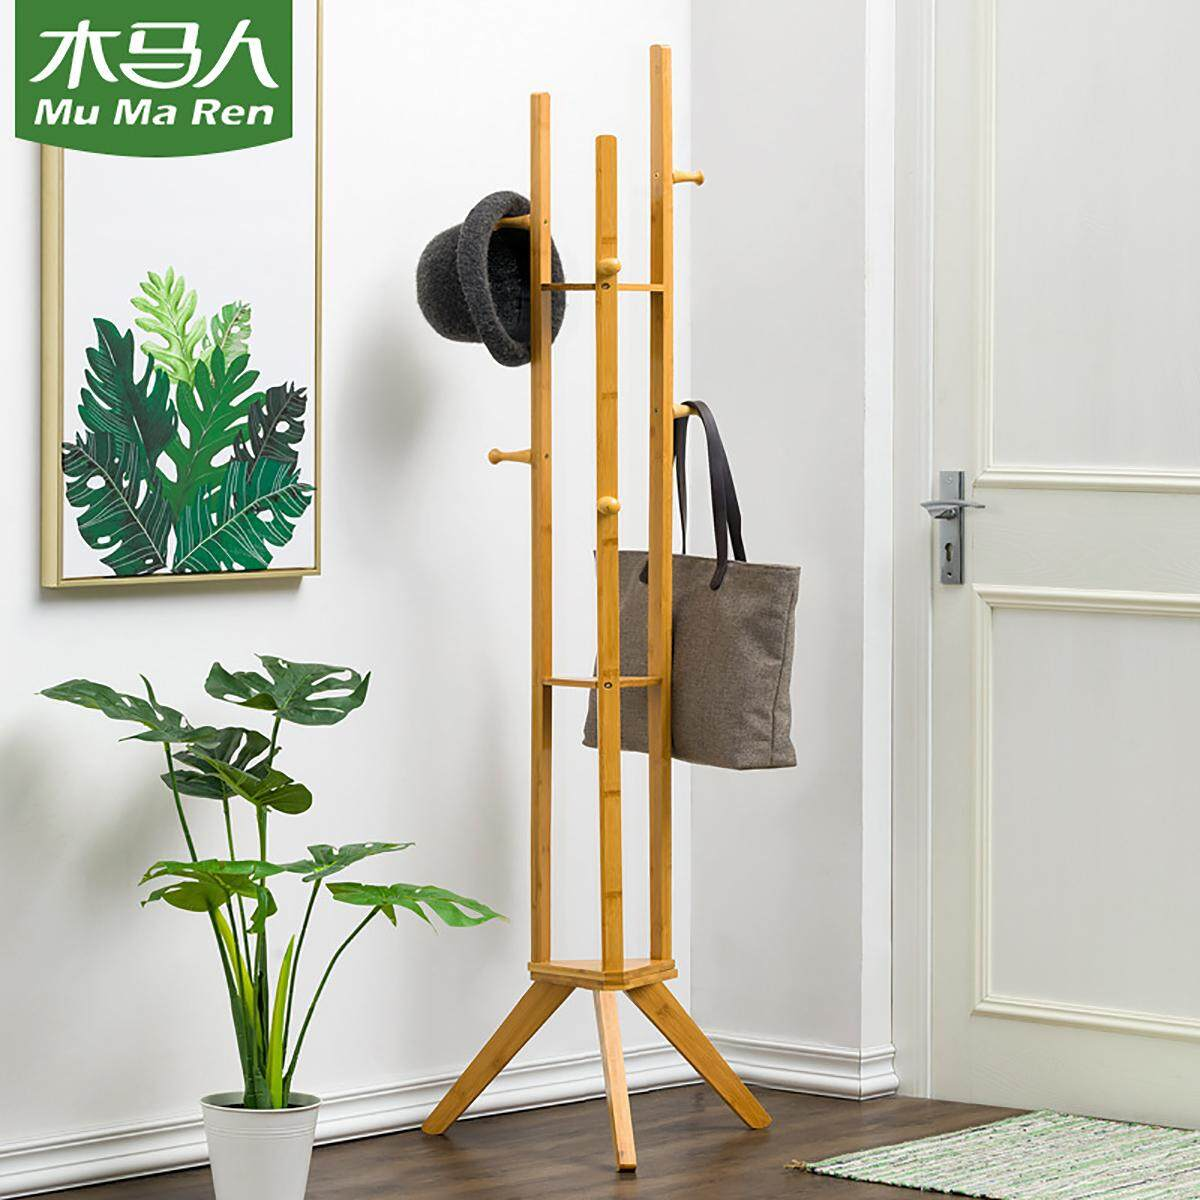 Mu Ma Ren Coat Rack Stand, Coat Tree Hanger, Hall Tree Free Standing, Farmhouse Style Bamboo Rack Holder with 6 Hooks 3-Layer Shelf for Clothes Coat,Laundry,Hat Renting/Decoration